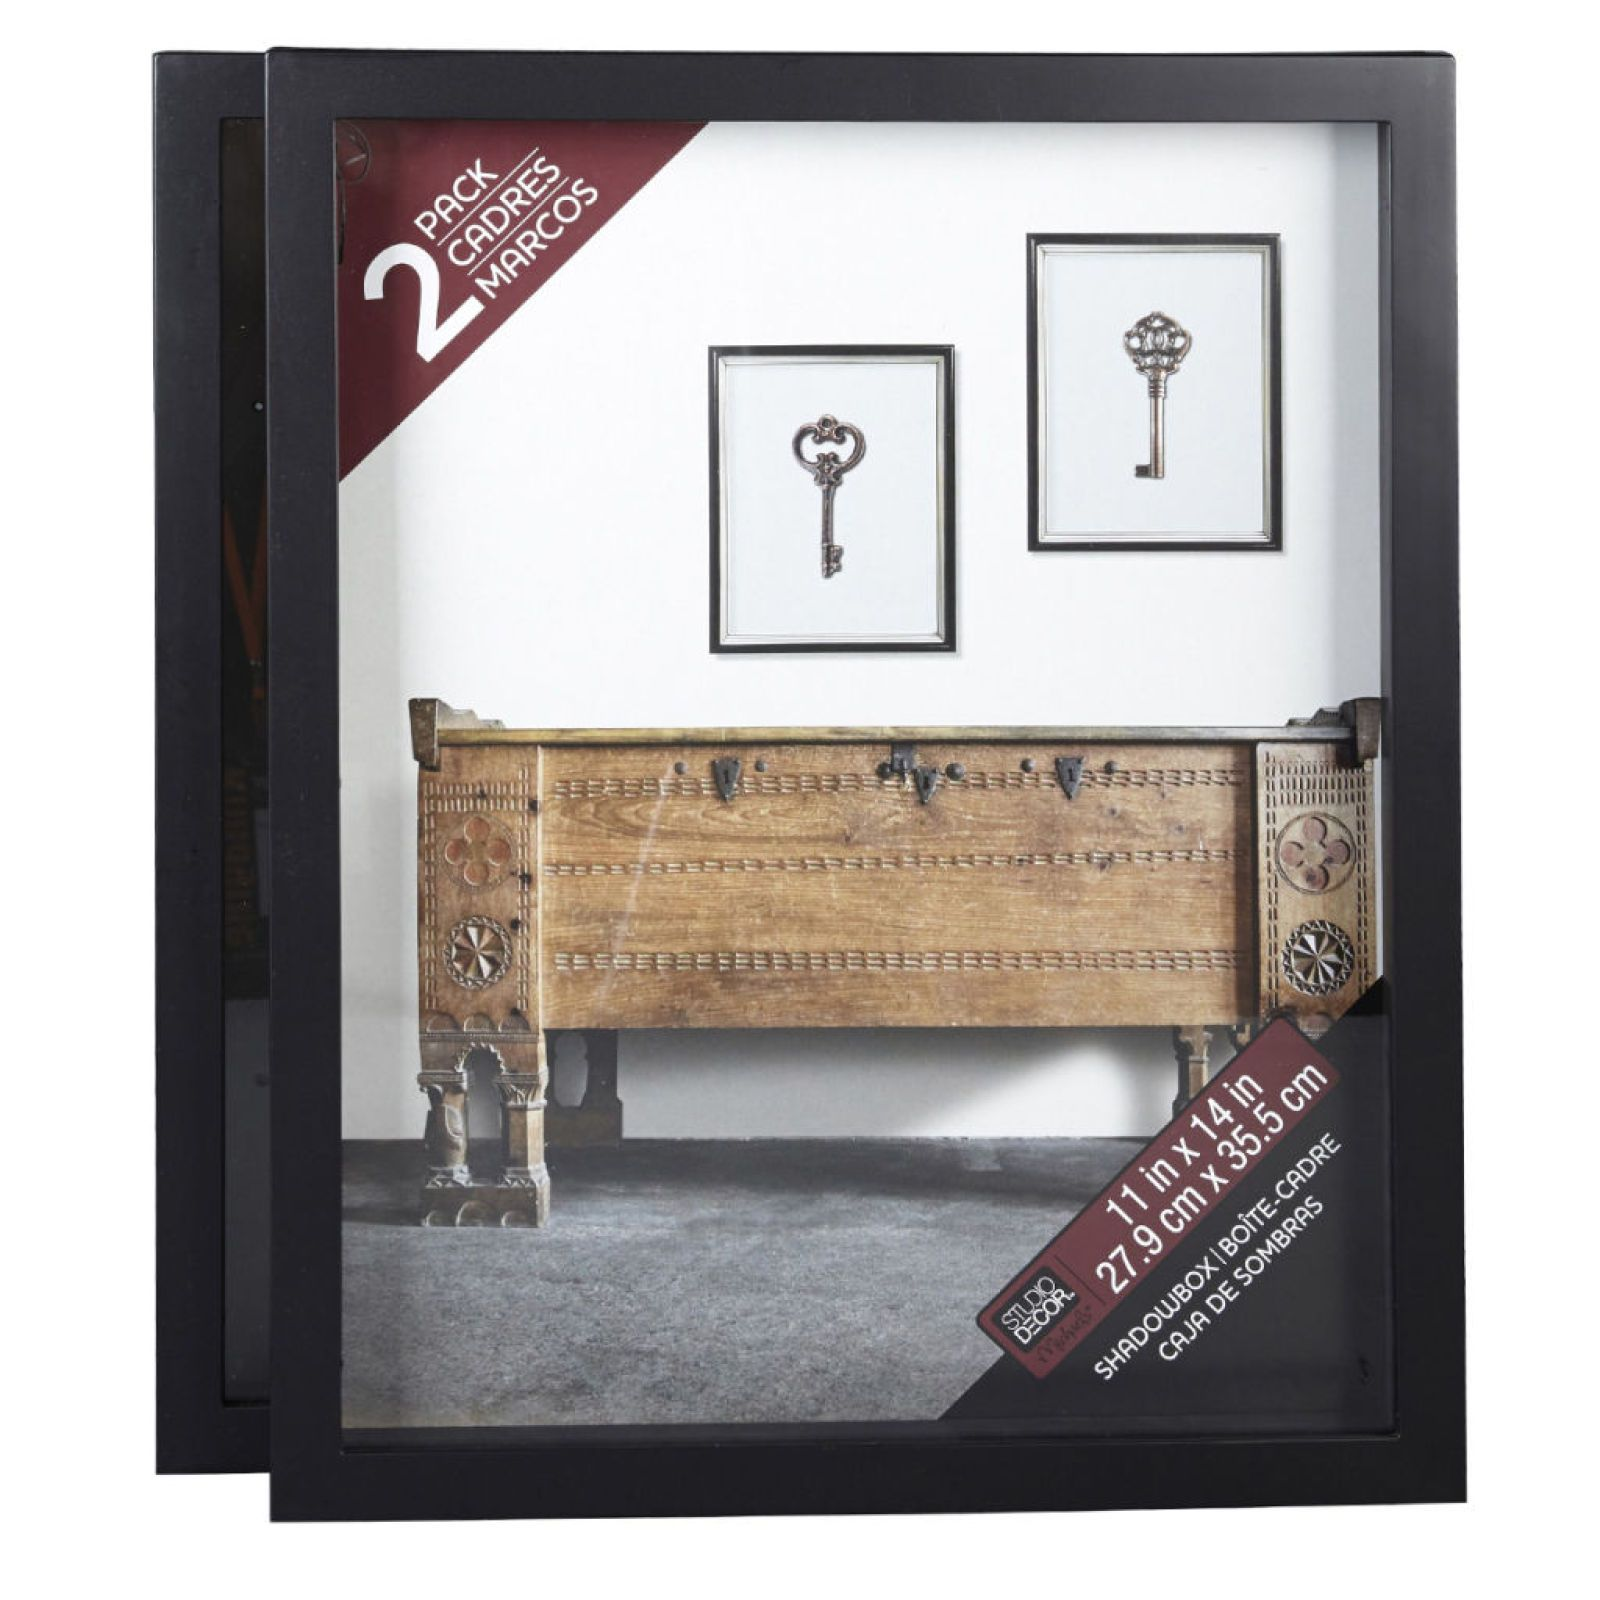 Studio Décor® Shadowbox, 2 Pack Studio decor, Shadow box